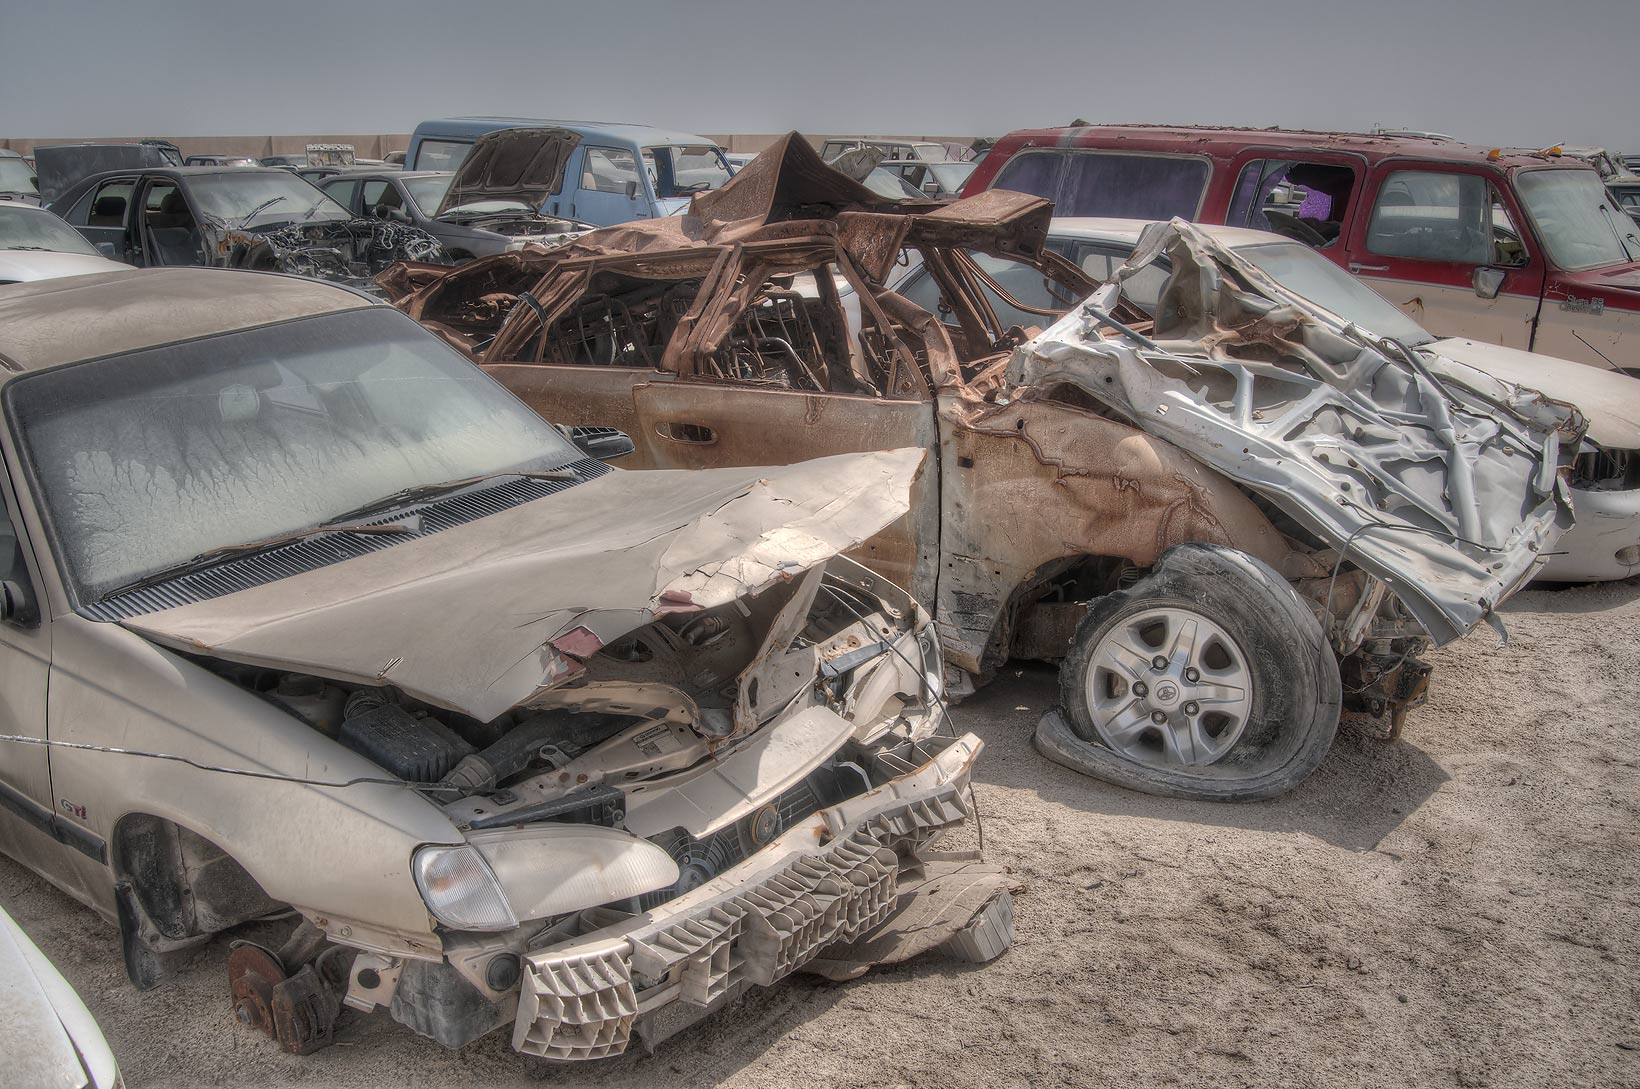 Damaged cars in a junkyard north of Mesaieed (Umm Said). Qatar